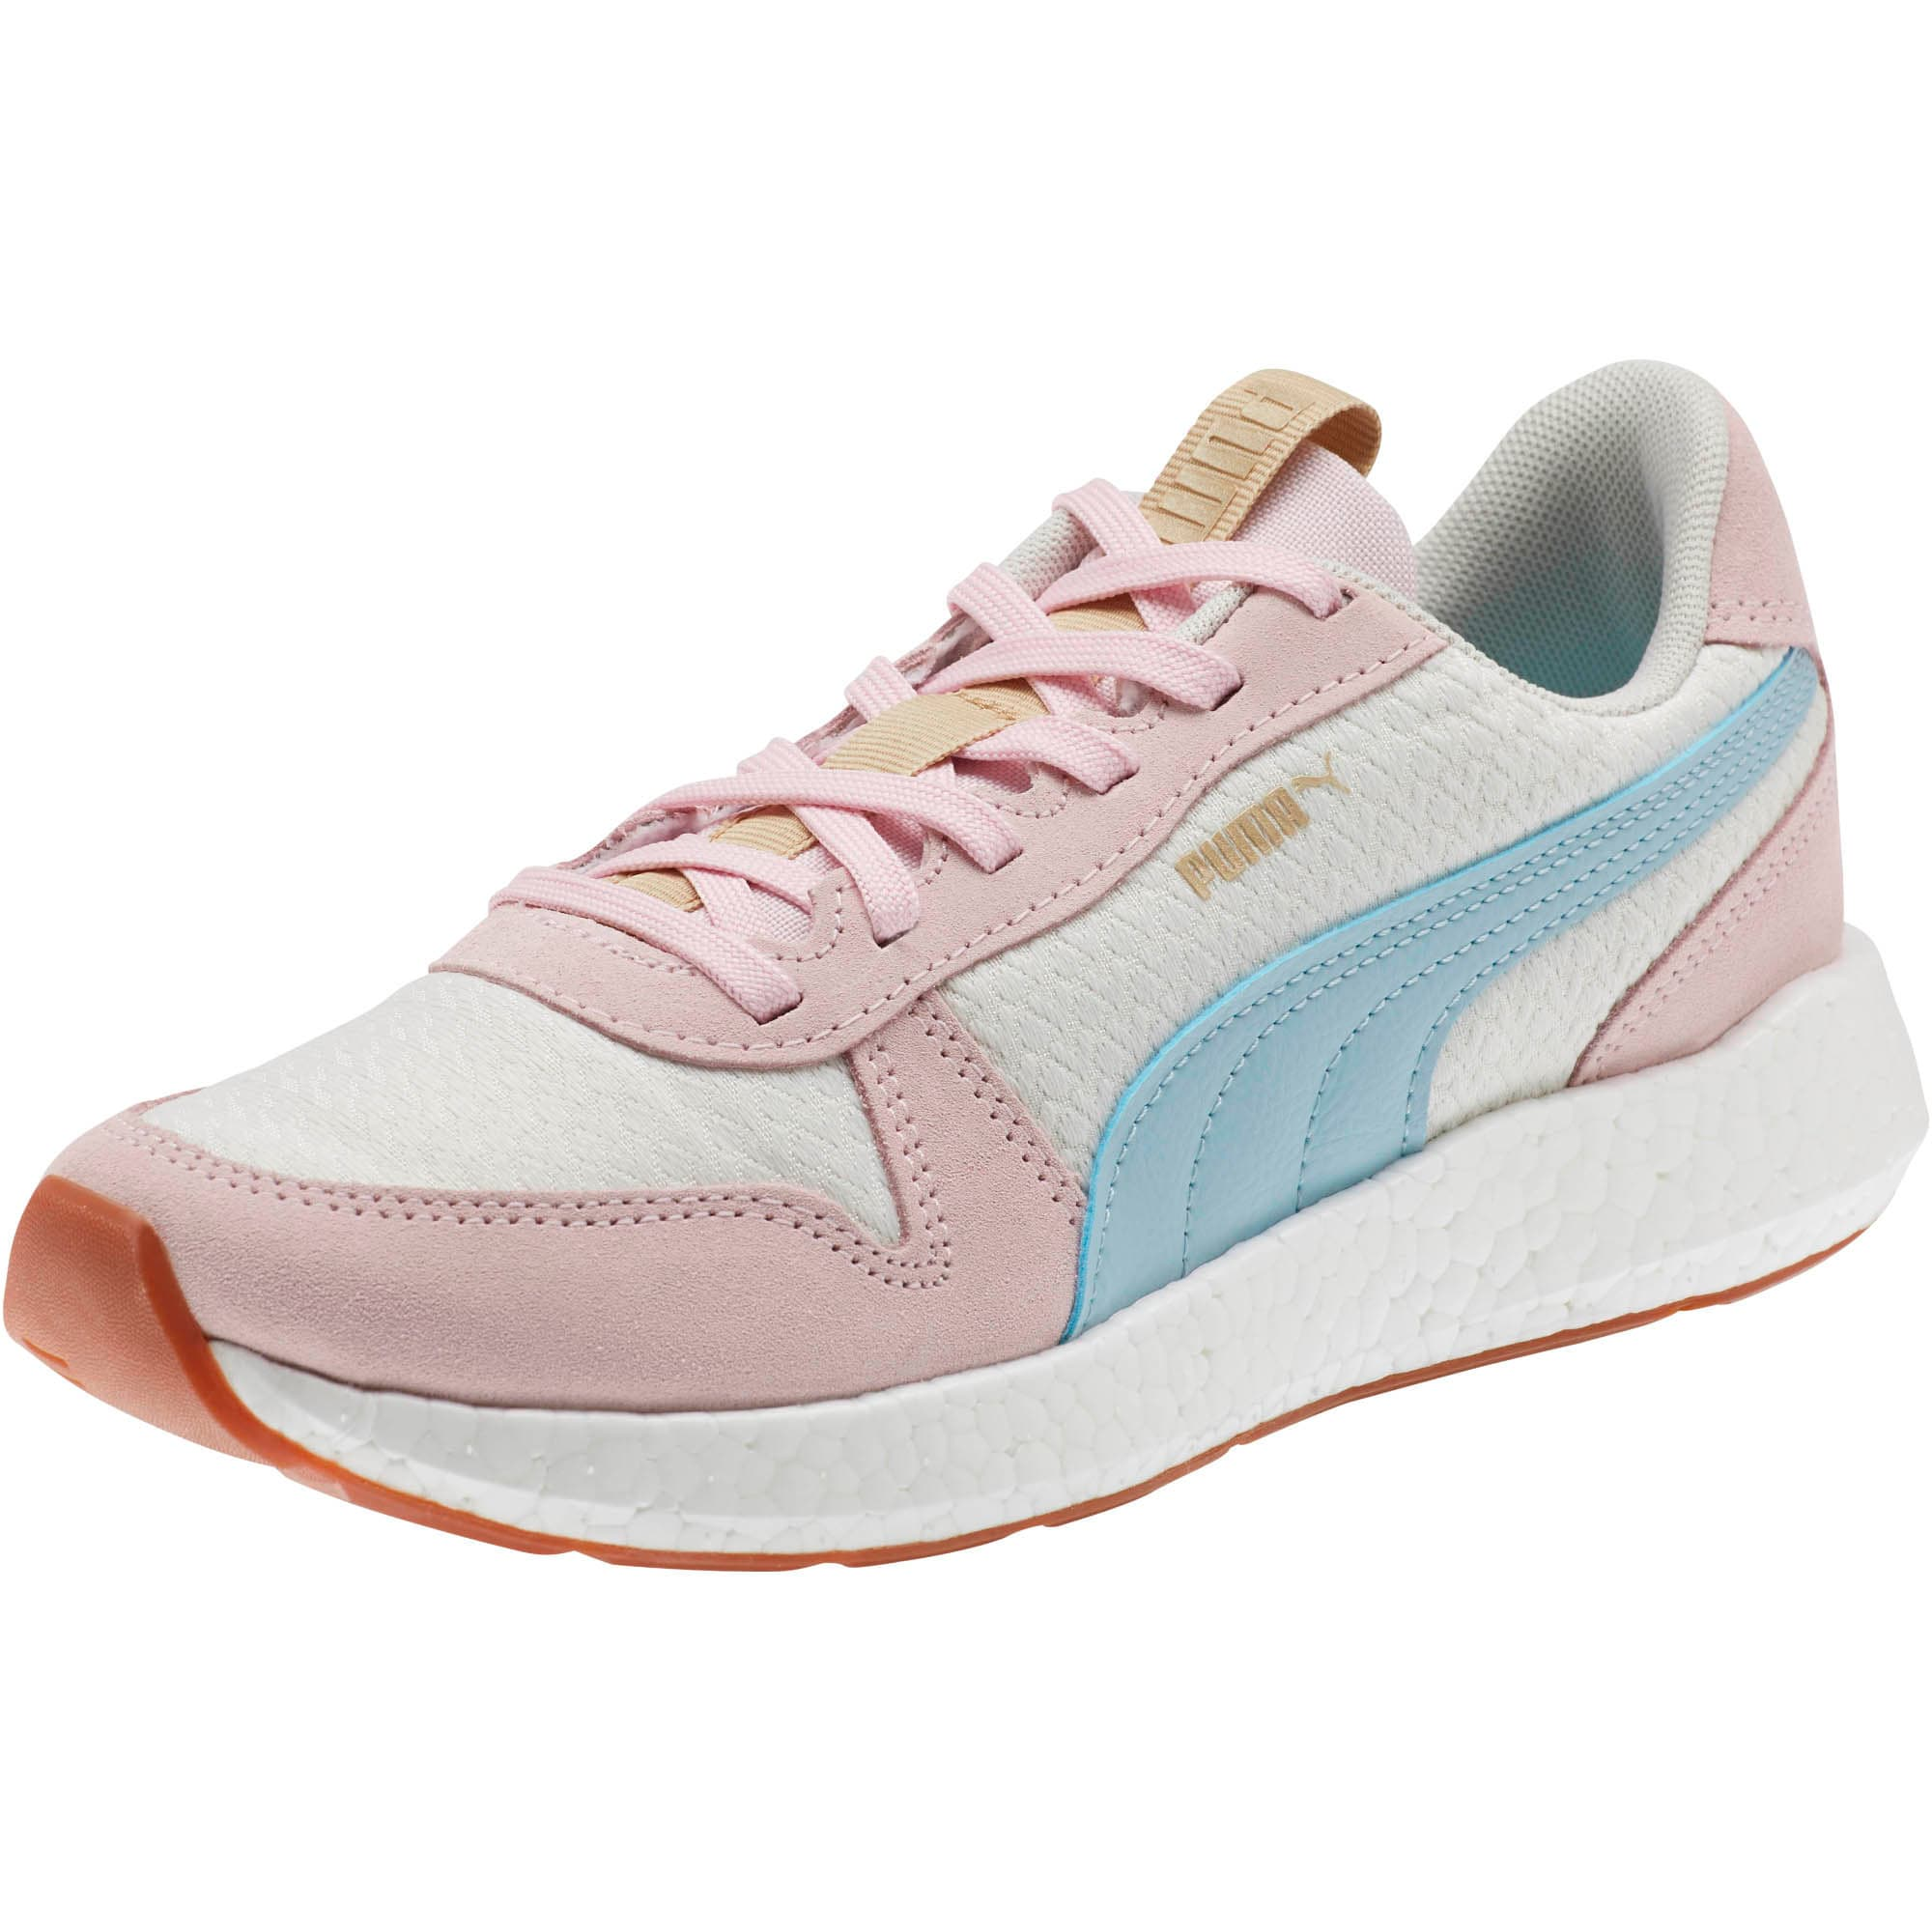 Thumbnail 1 of NRGY Neko Retro Sweet Women's Street Running Shoes, Whisper White-Pink-Sky, medium